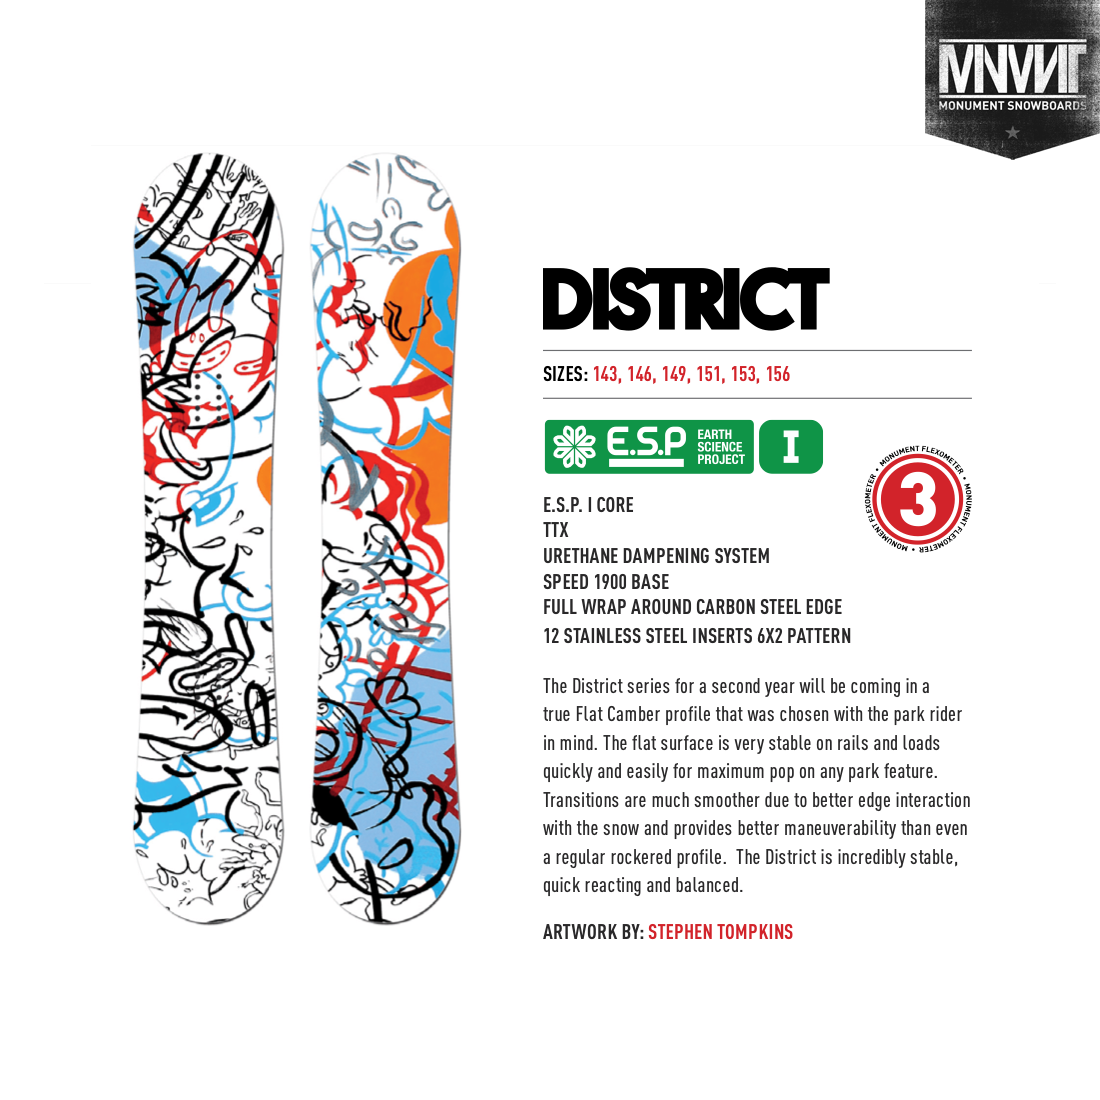 2014-2015 MNMNT Limited Edition Artist Series   Client: Monument Snowboards  SOLD OUT